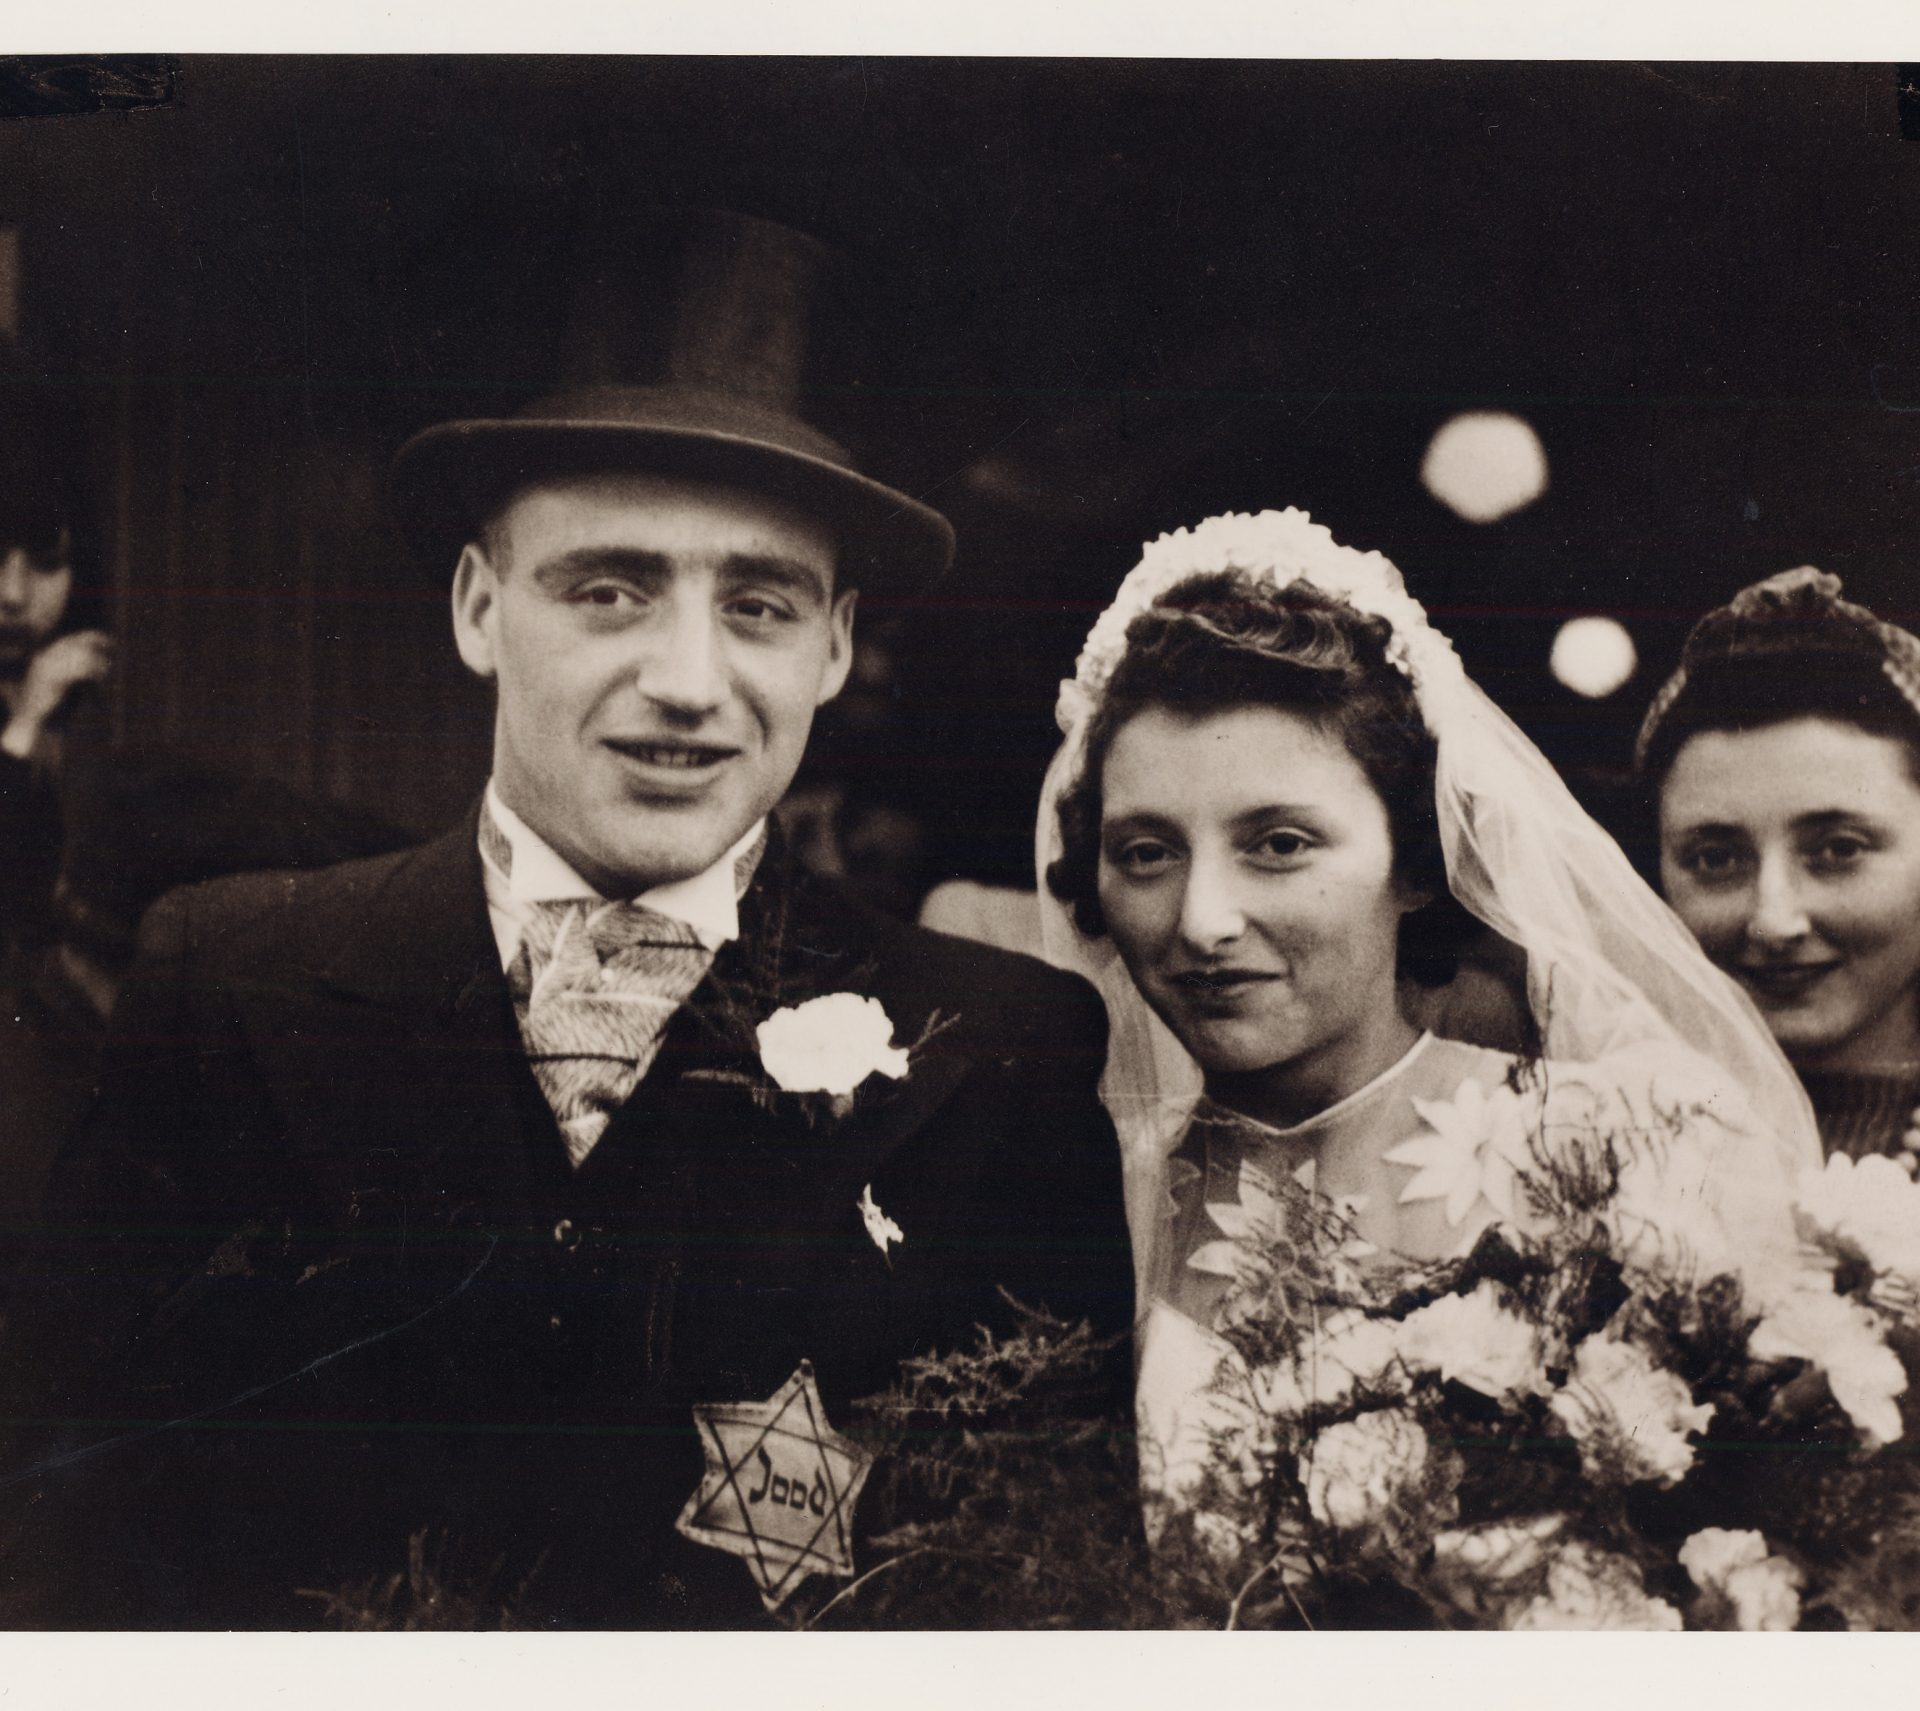 Wedding of Salomon Schryver and Flora Mendels in Amsterdam in 1942.